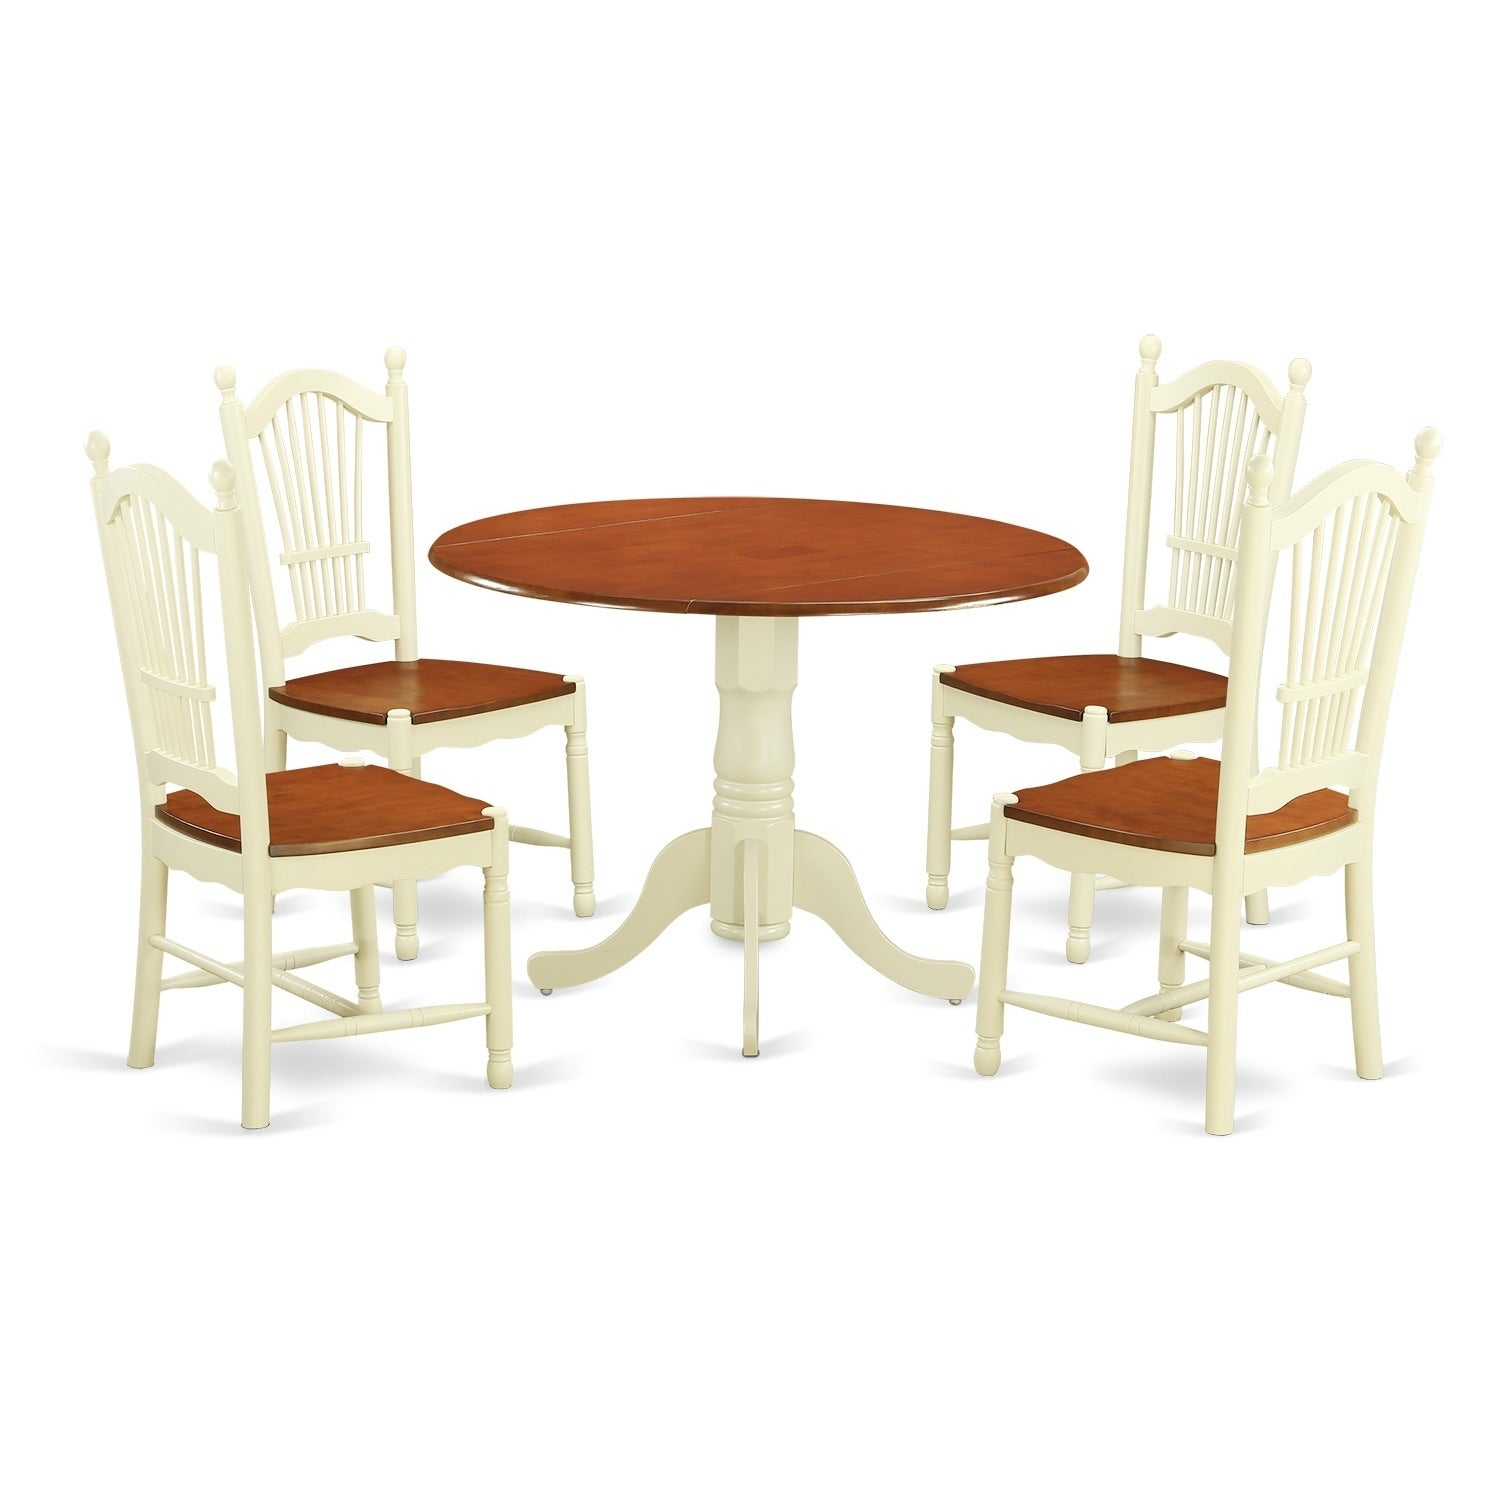 Shop dldo5 w 5 pc kitchen dining set kitchen dinette table and 4 chairs free shipping today overstock com 17652149